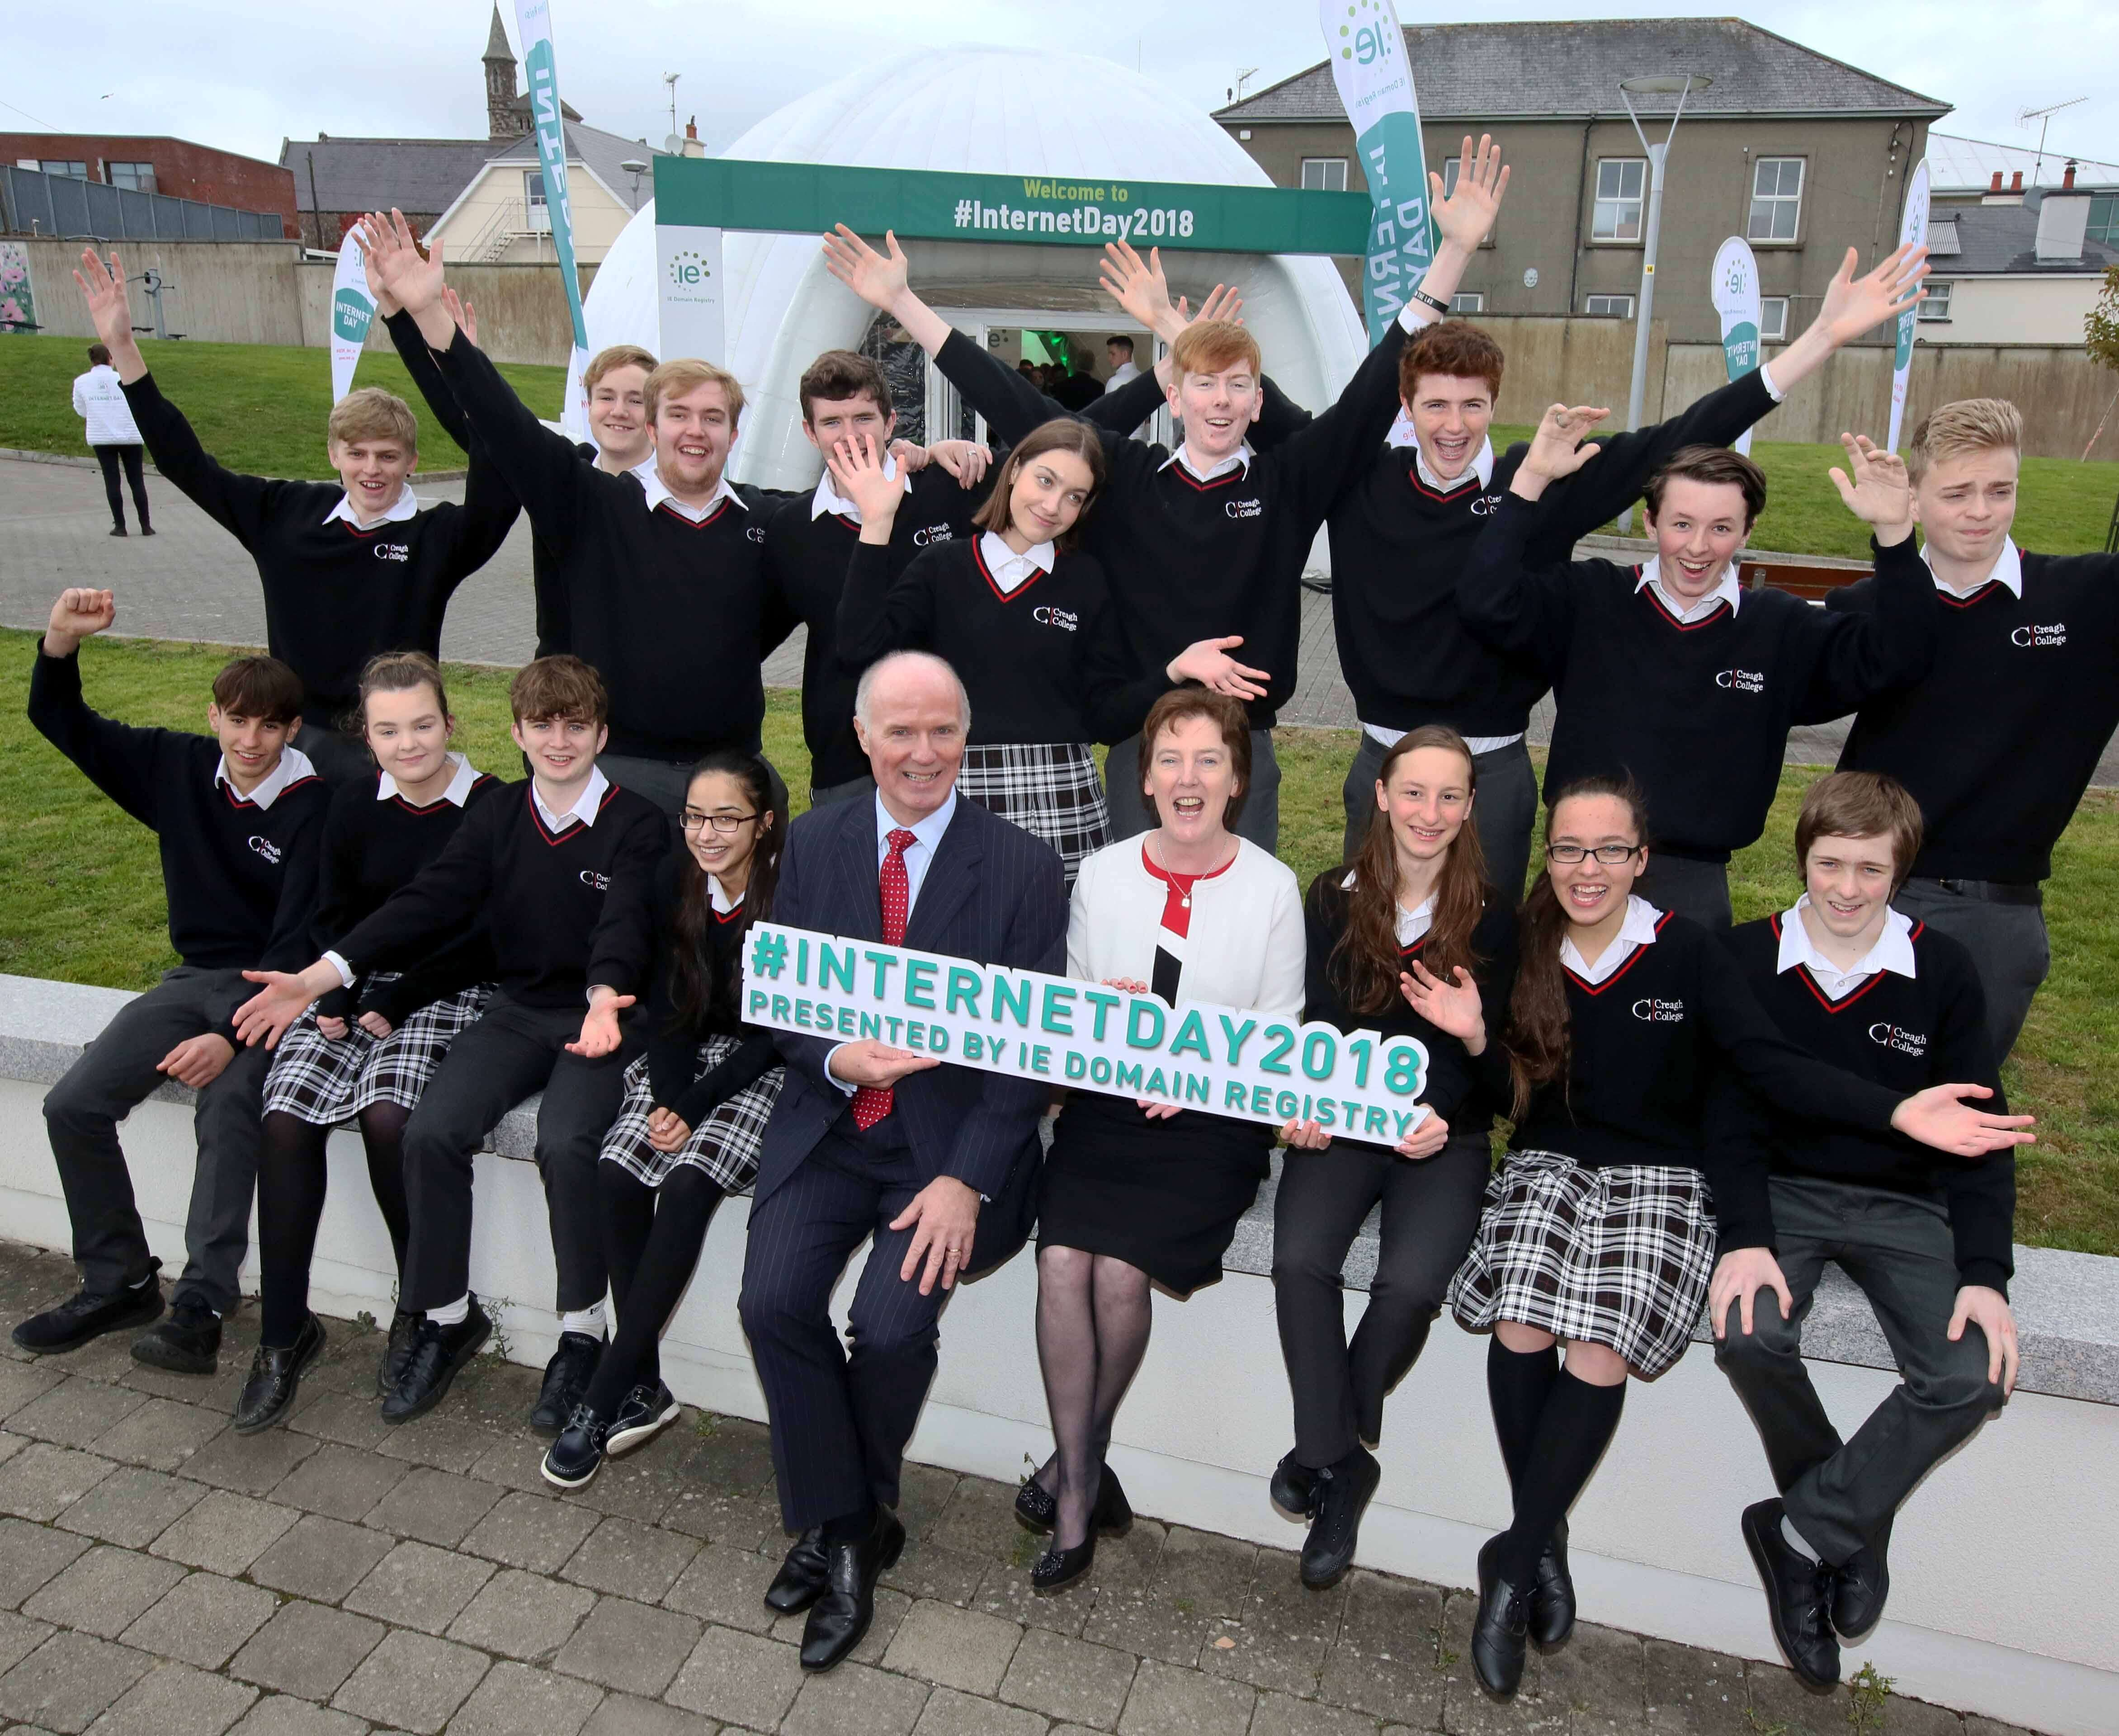 School children from Creagh College enjoy the Internet Day celebrations with our CEO David Curtin and Customer Operations Manager, Oonagh McCutcheon